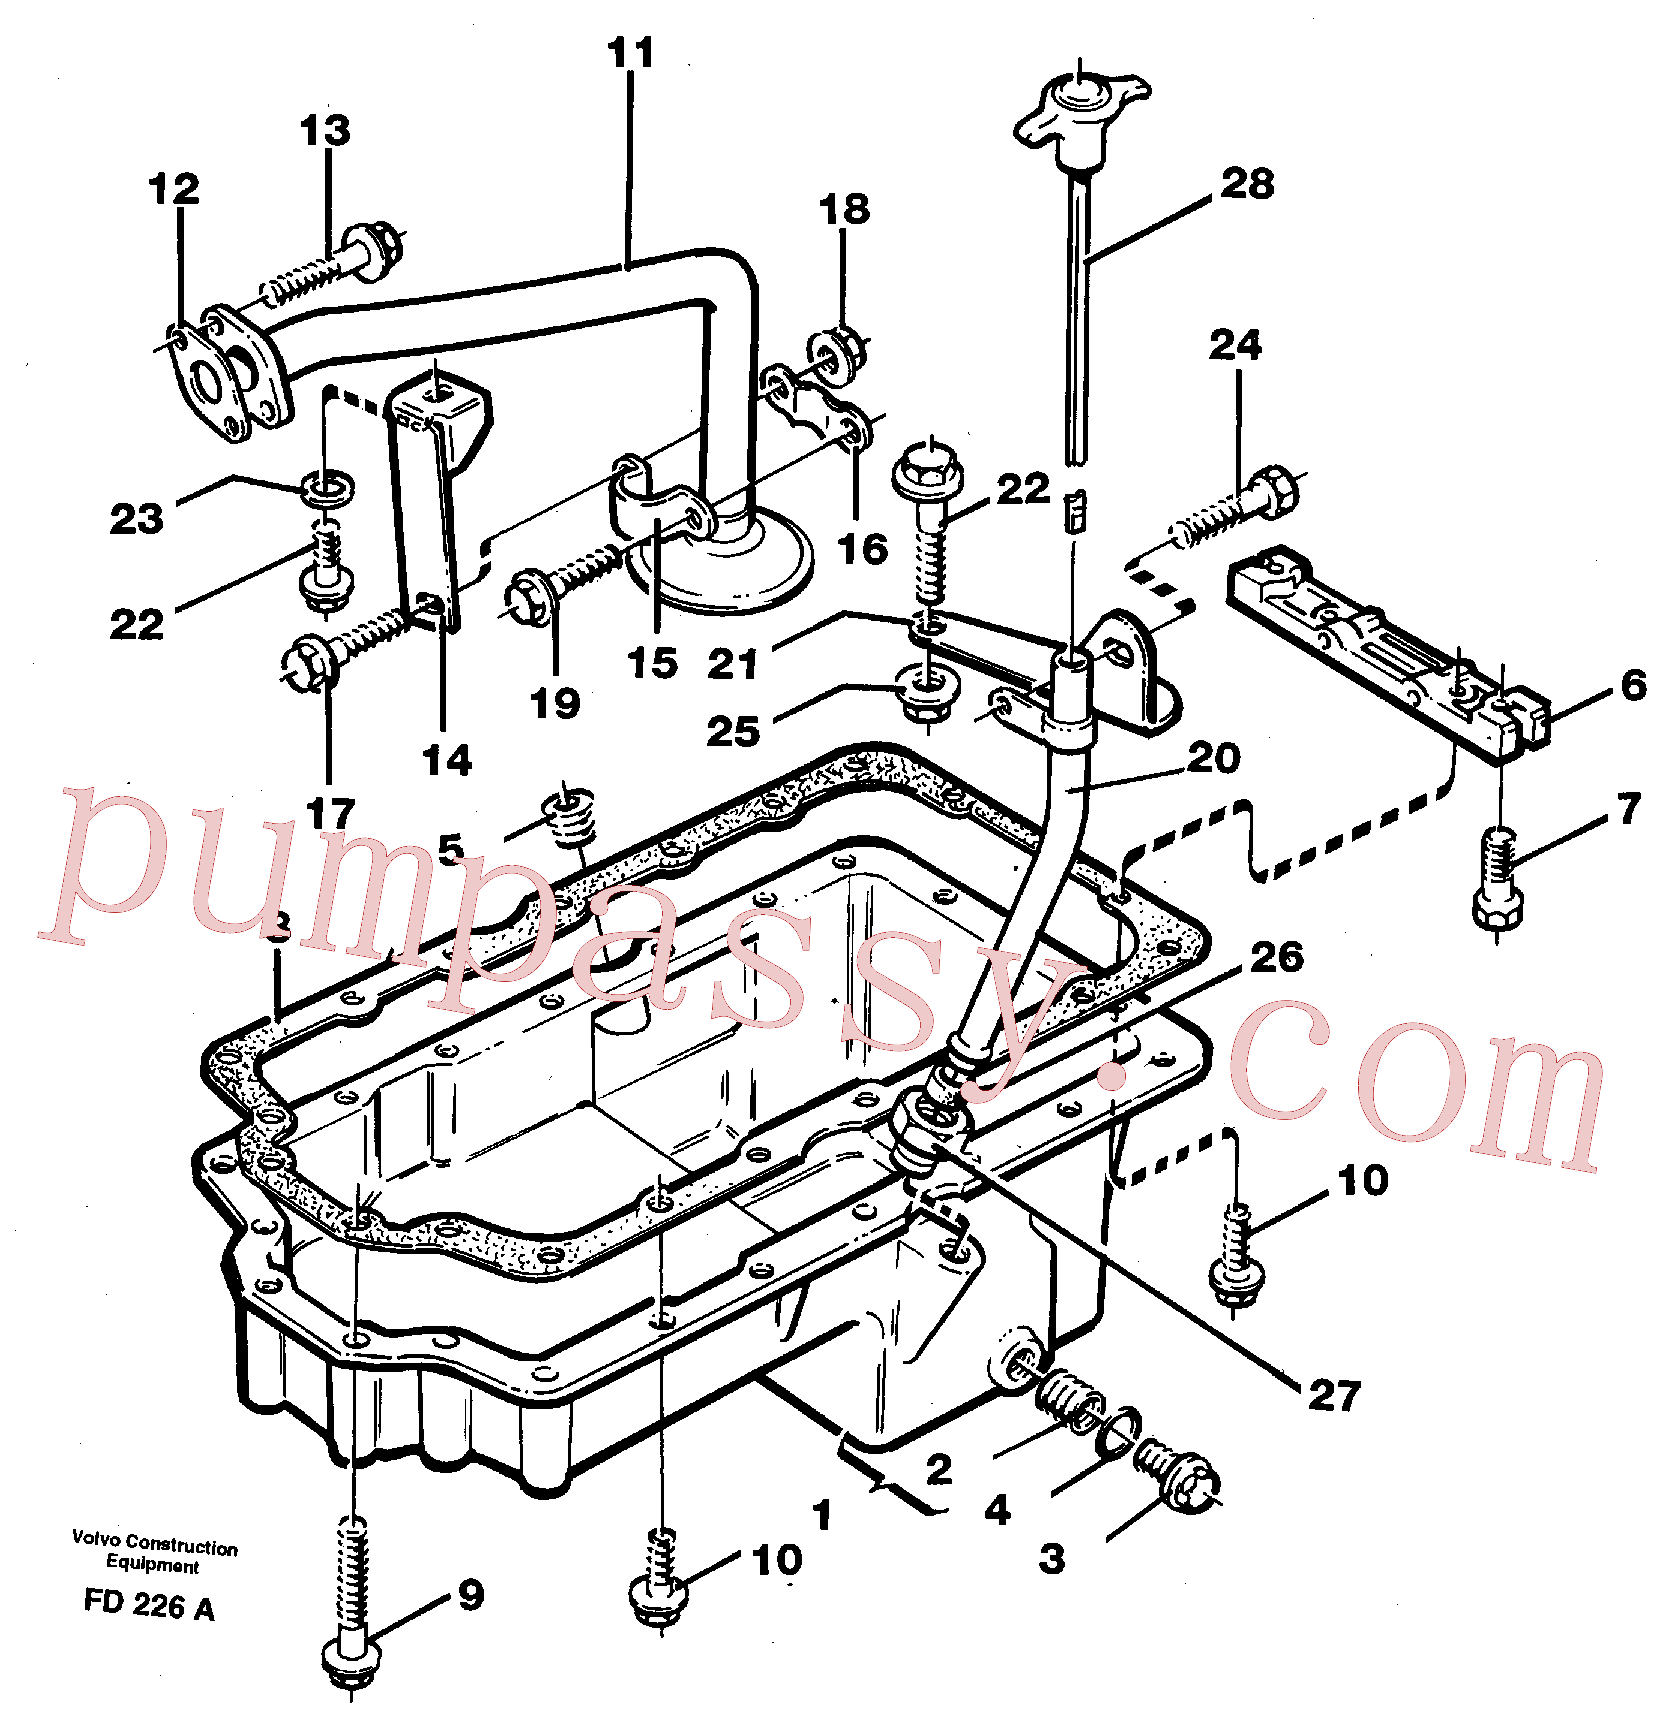 VOE11997968 for Volvo Oil sump(FD226A assembly)